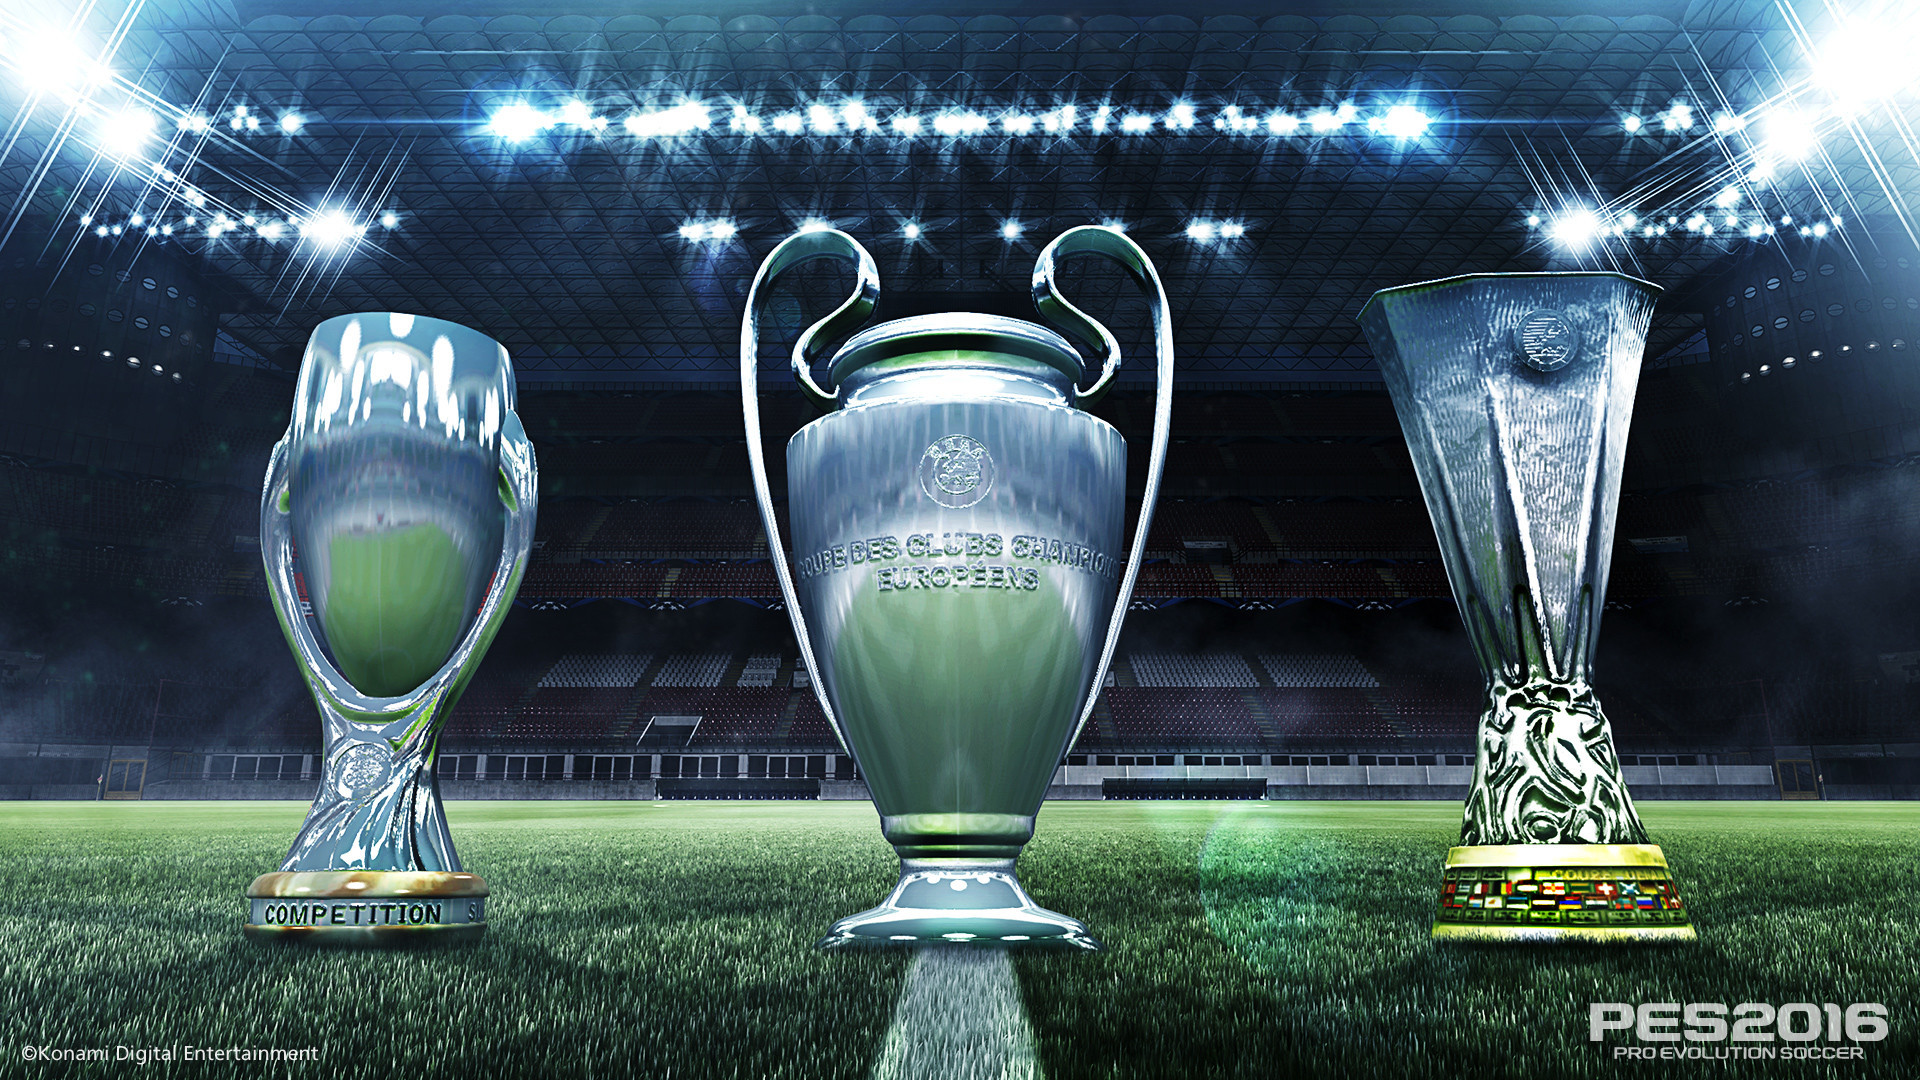 Res: 1920x1080, new-uefa-champions-league-wallpaper--WTG20065792 - yese69.com - 4K  Wallpapers World